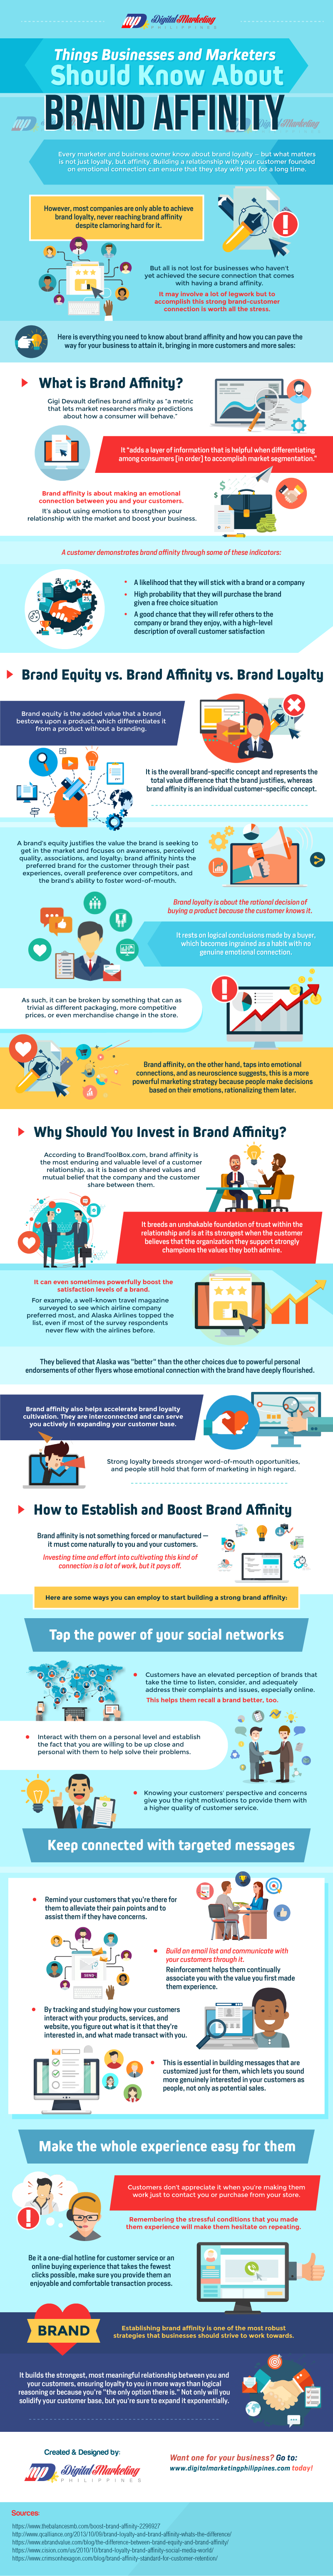 Things Businesses and Marketers Should Know About Brand Affinity